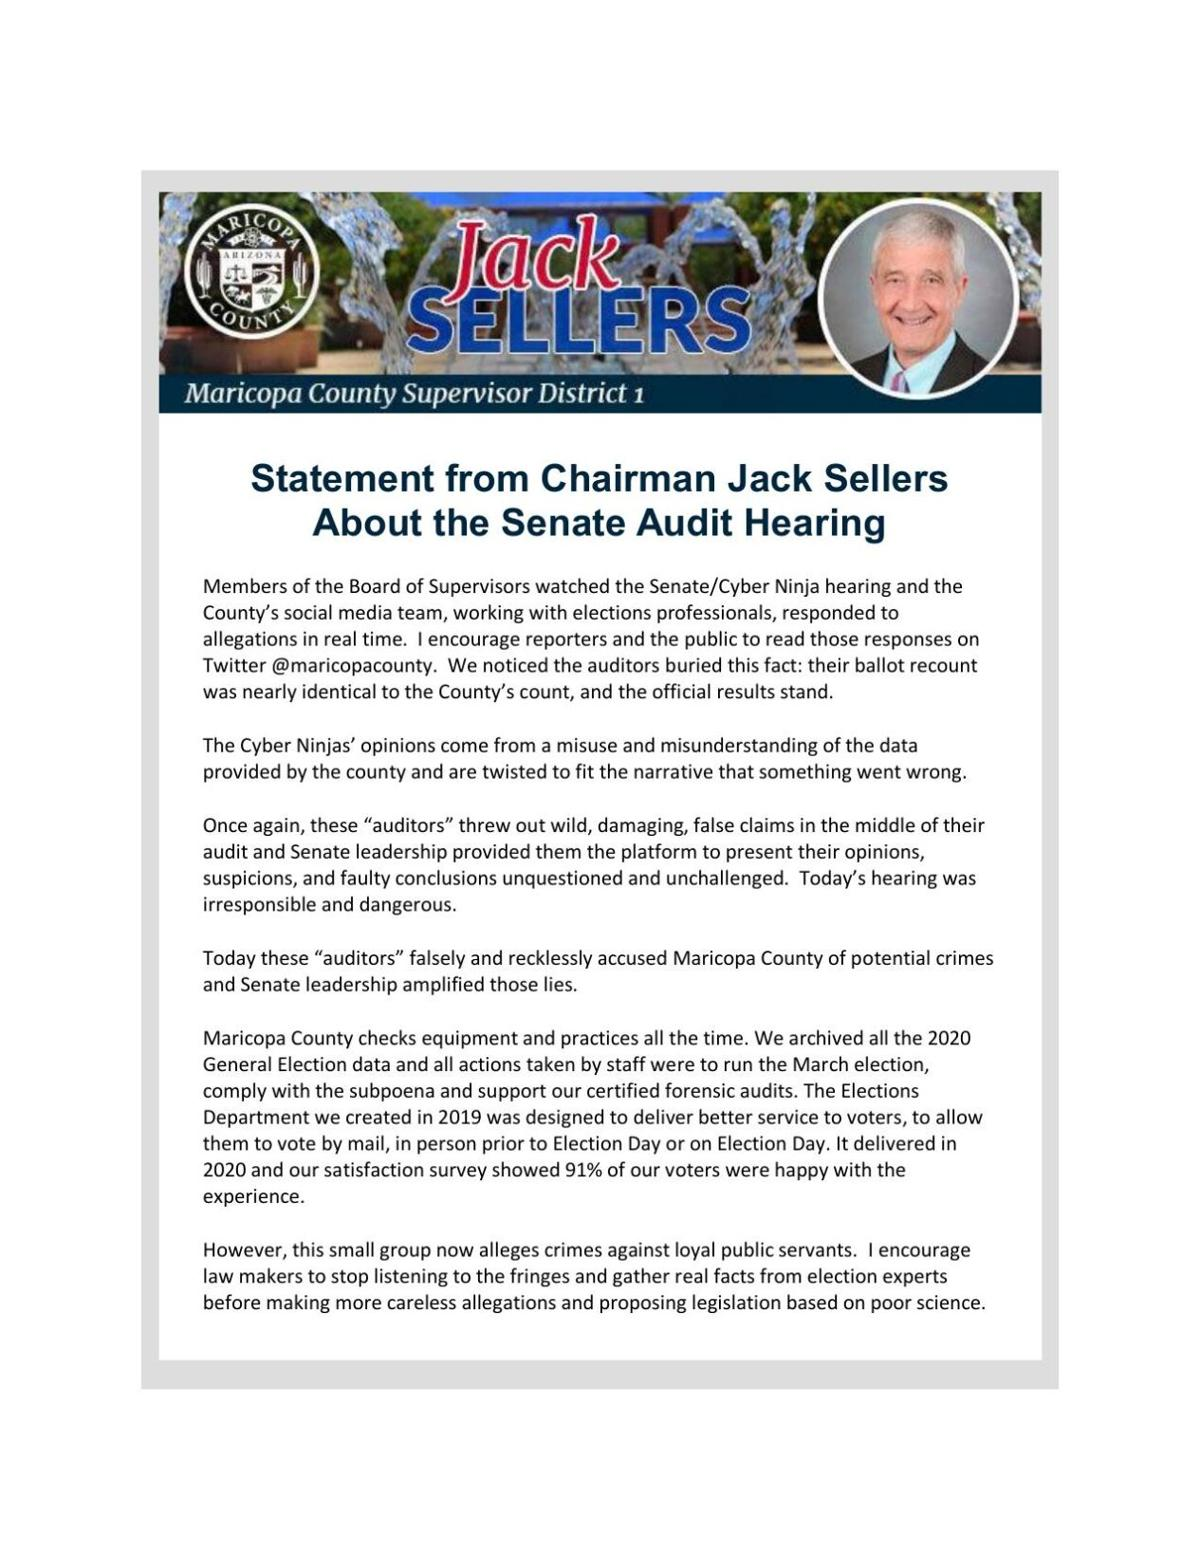 Statement from Chairman Jack Sellers About the Senate Audit Hearing